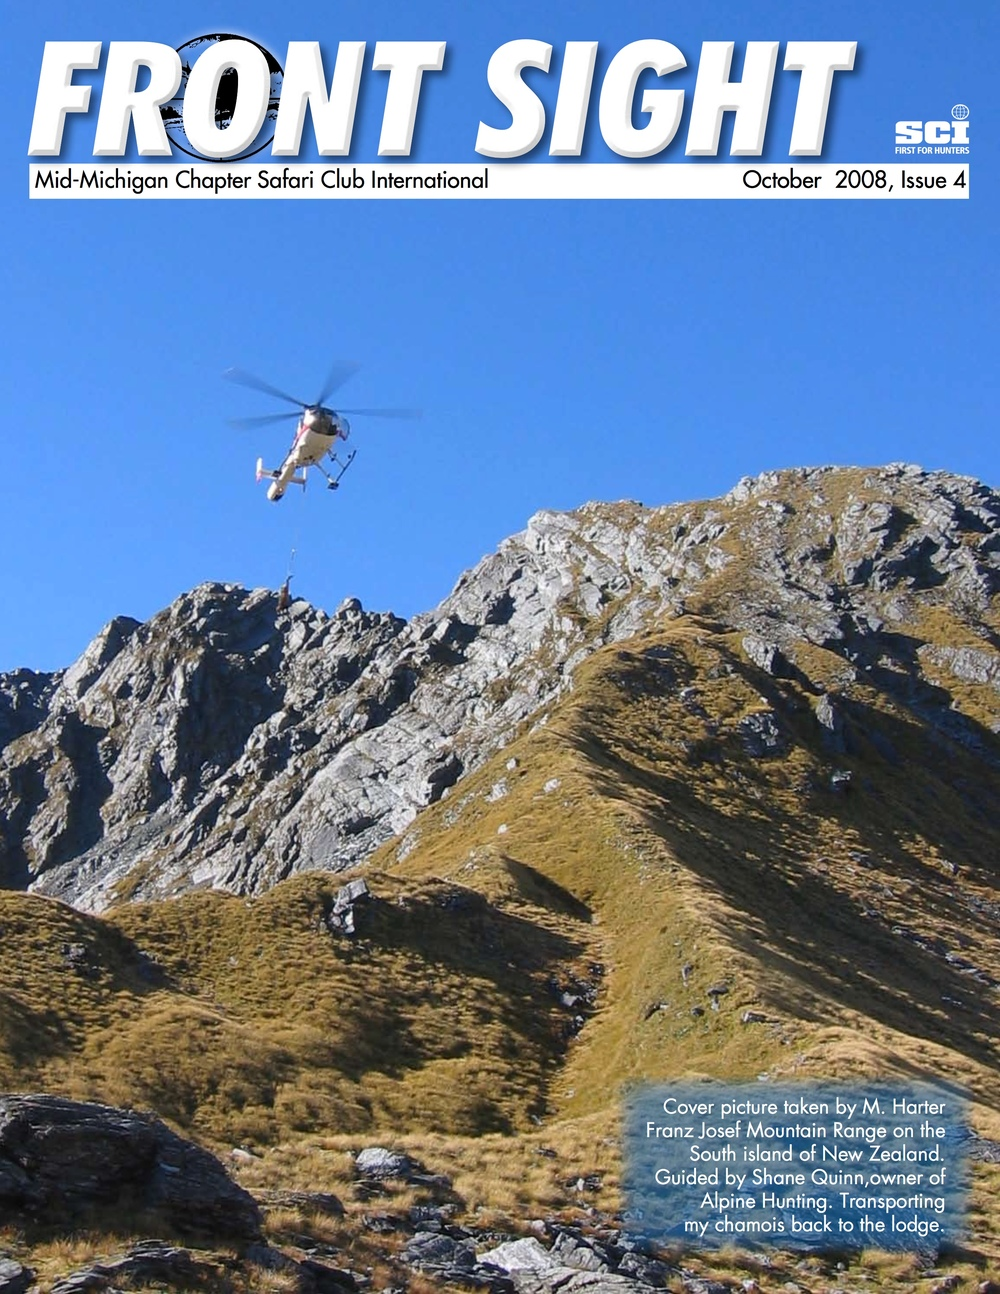 Issue 4, October 2008